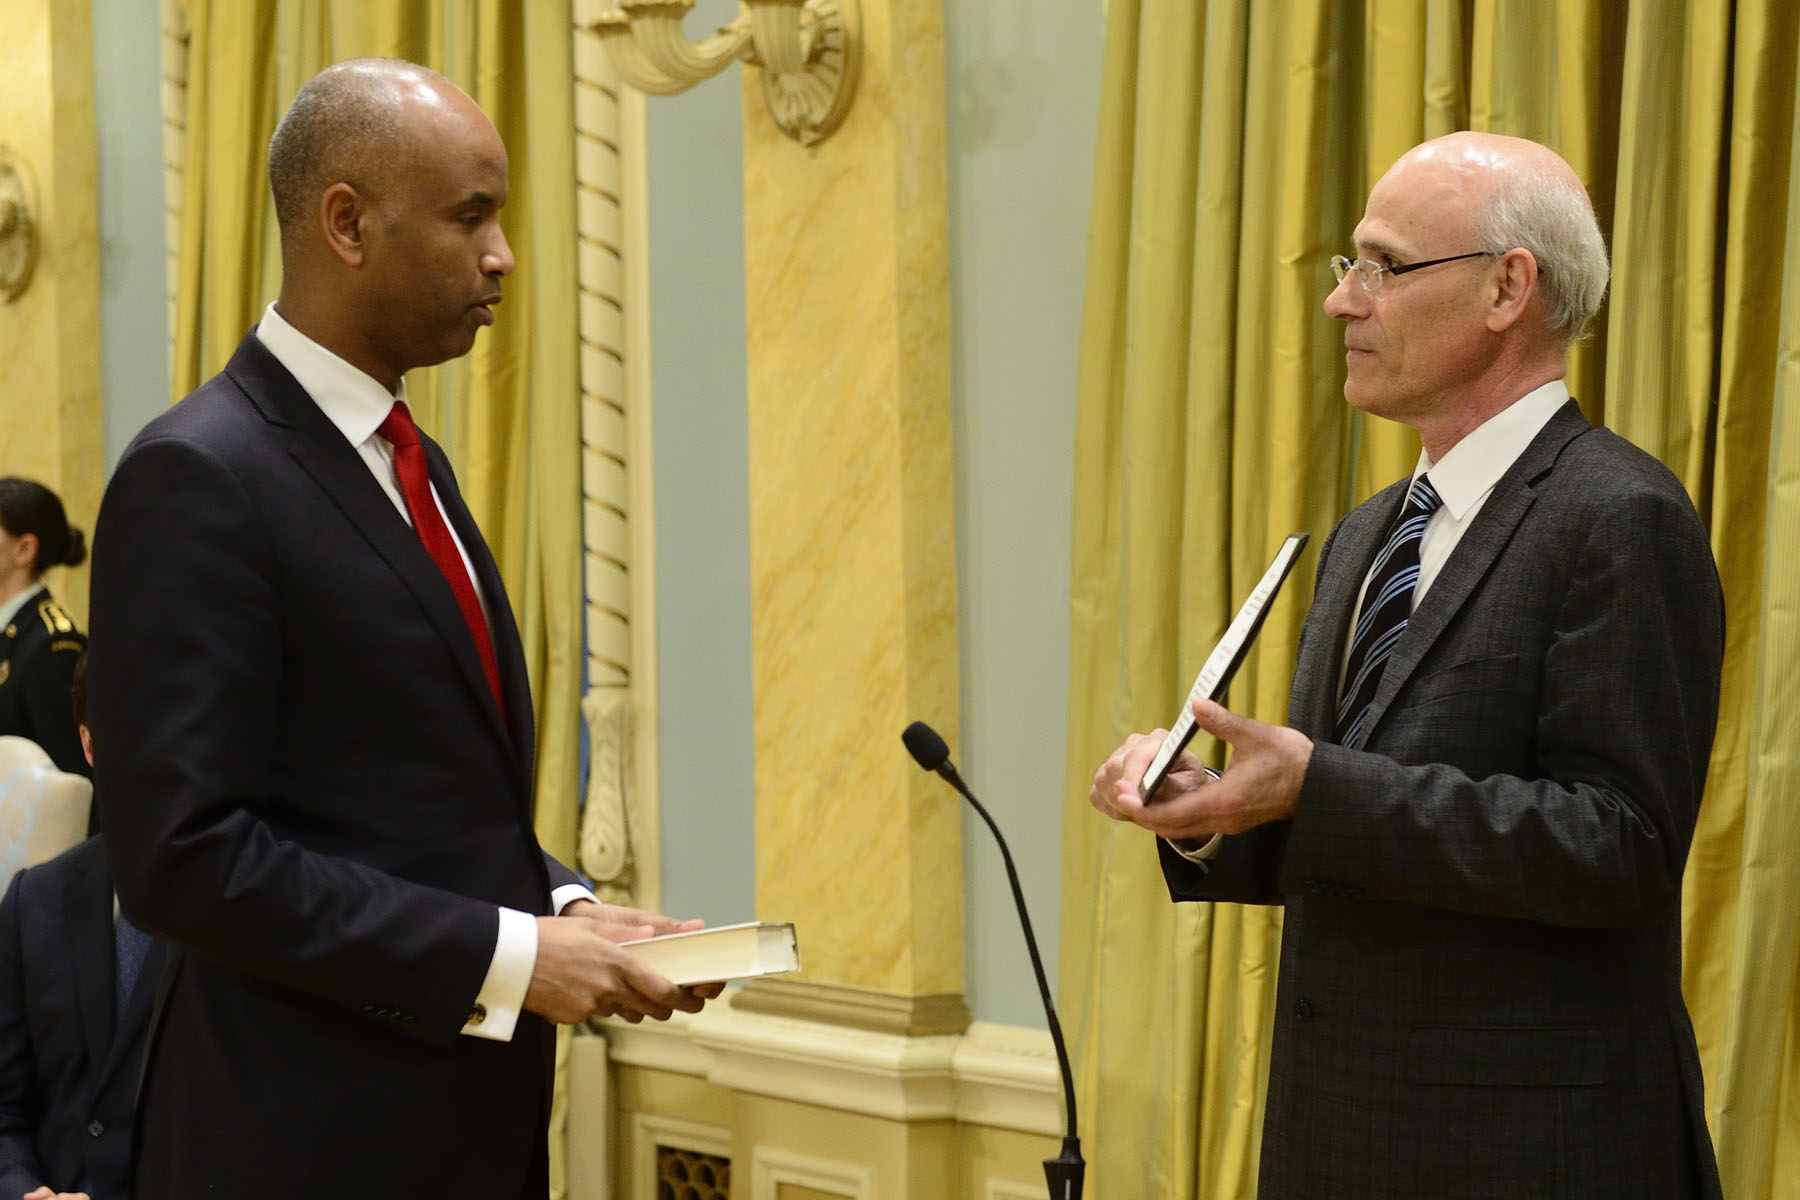 Ahmed D. Hussen became Minister of Immigration, Refugees and Citizenship.